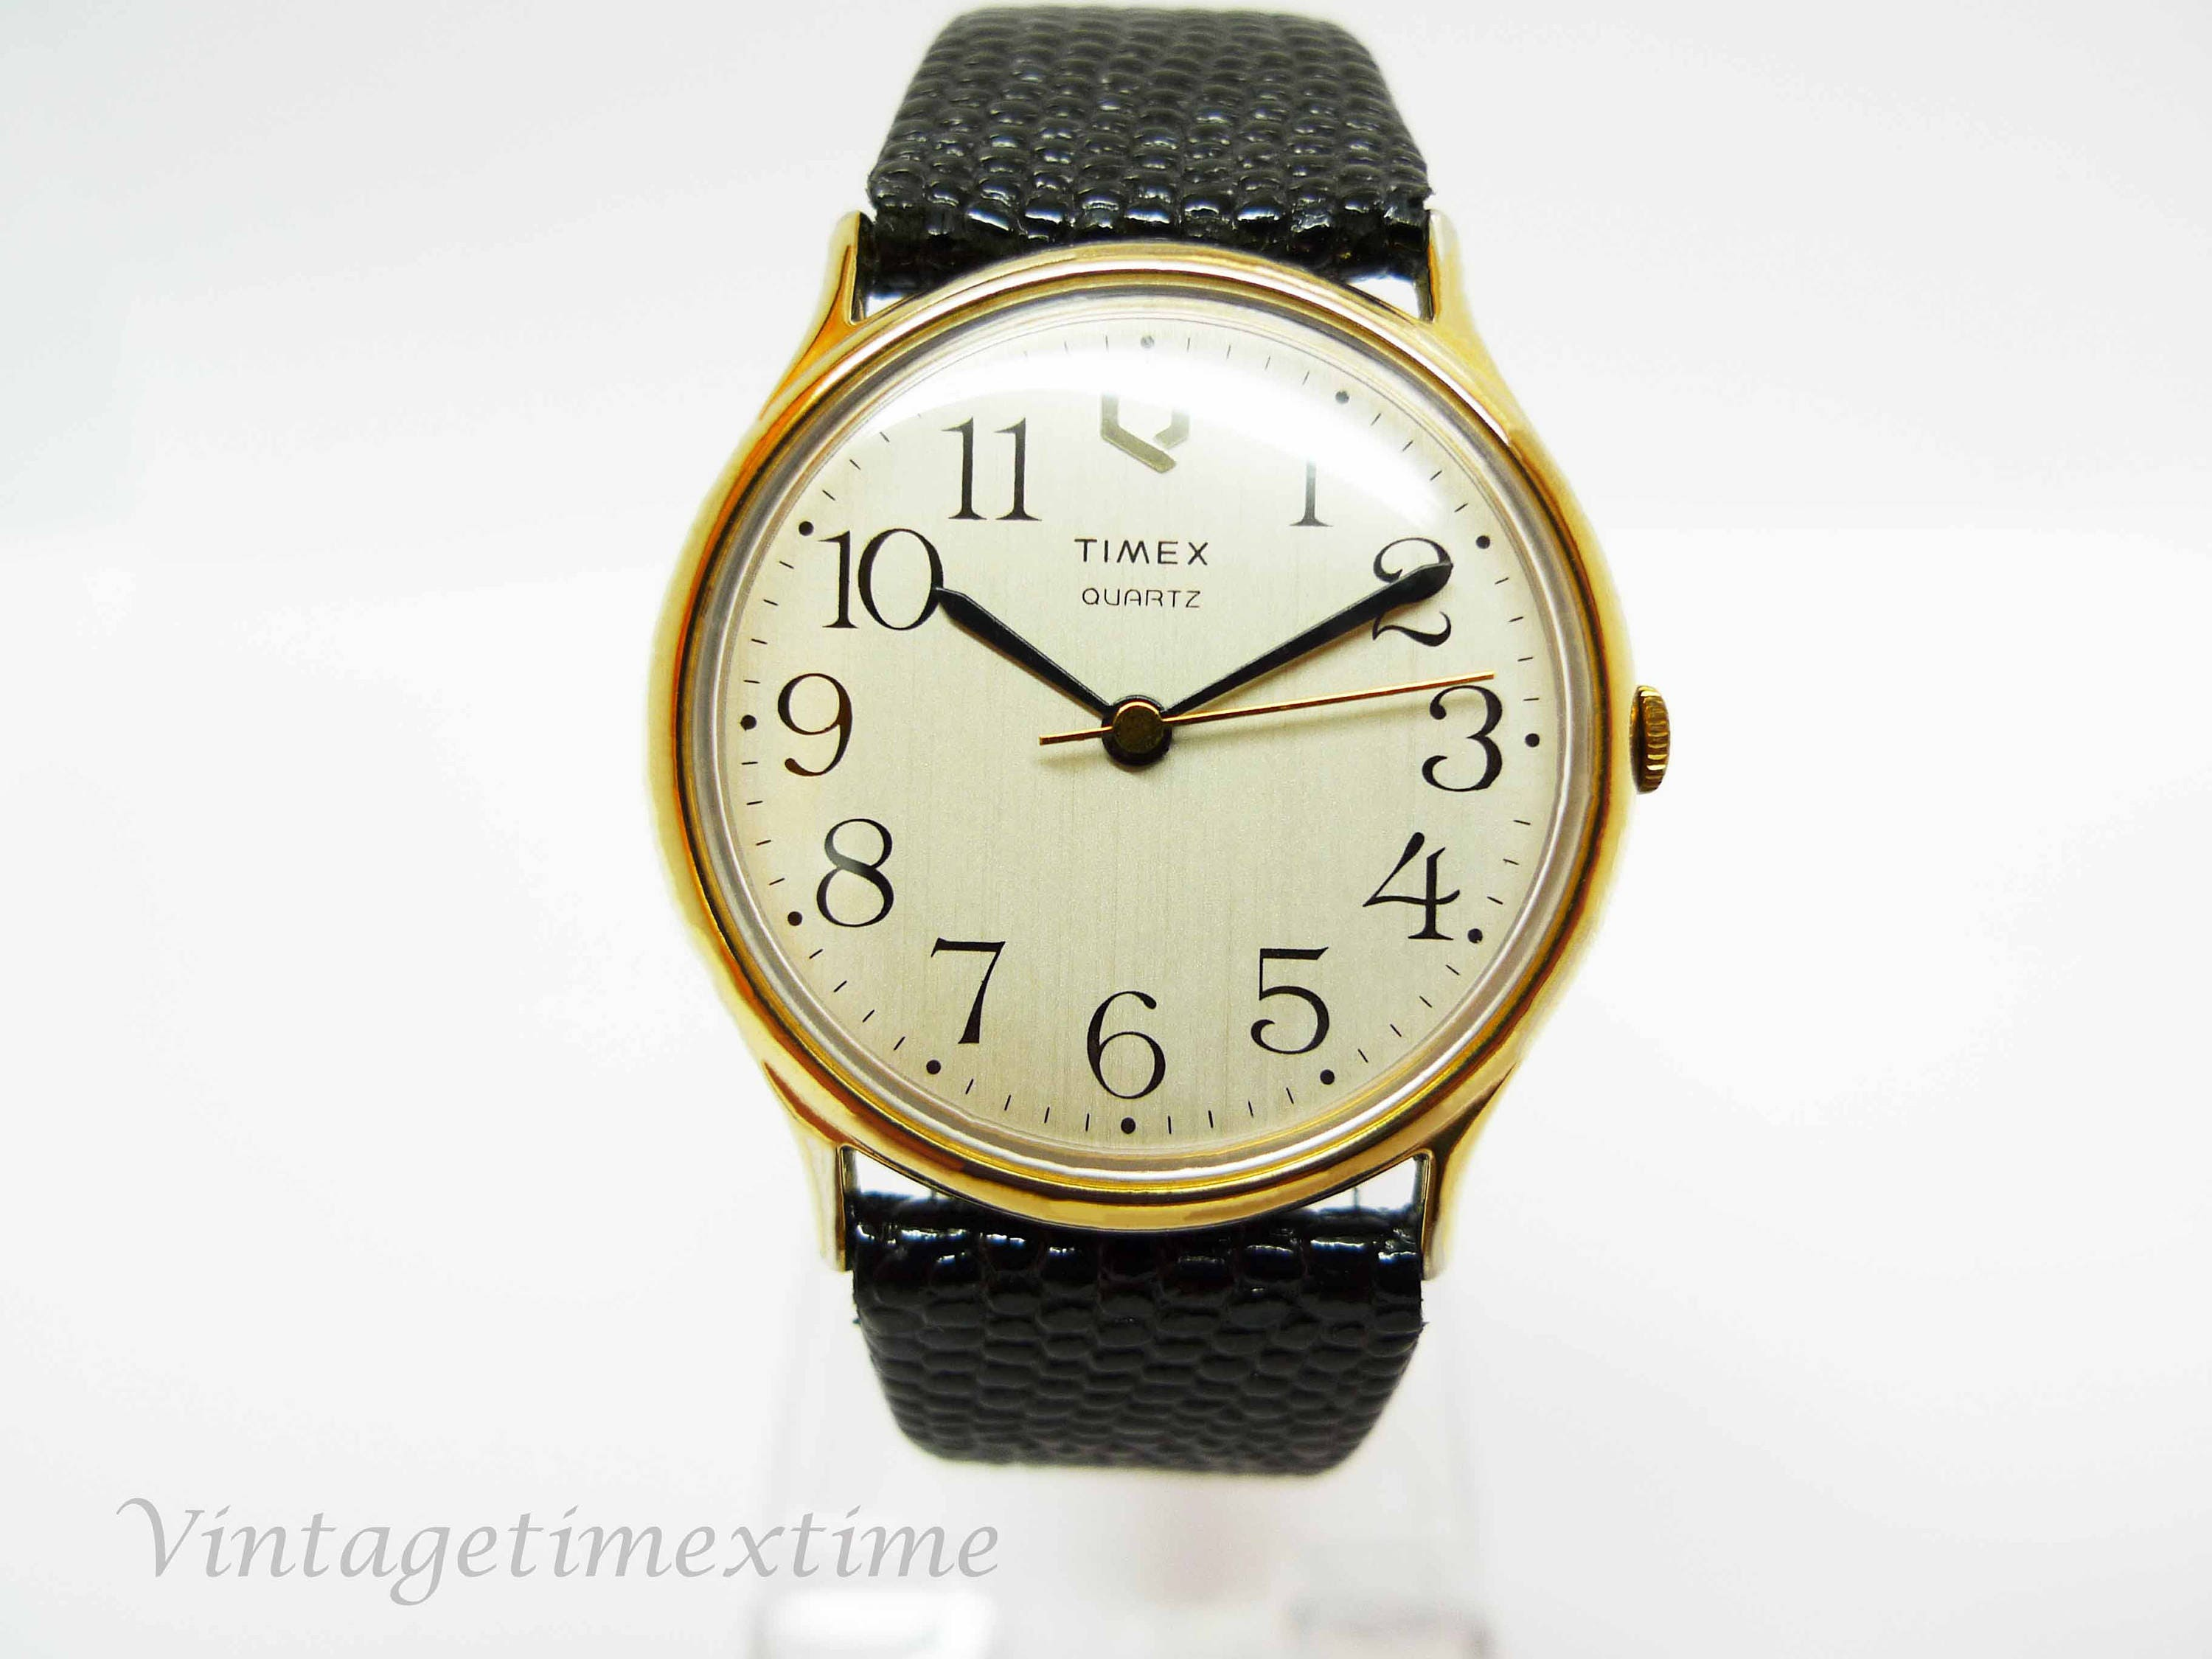 Timex 1983 Gents Quartz Watch